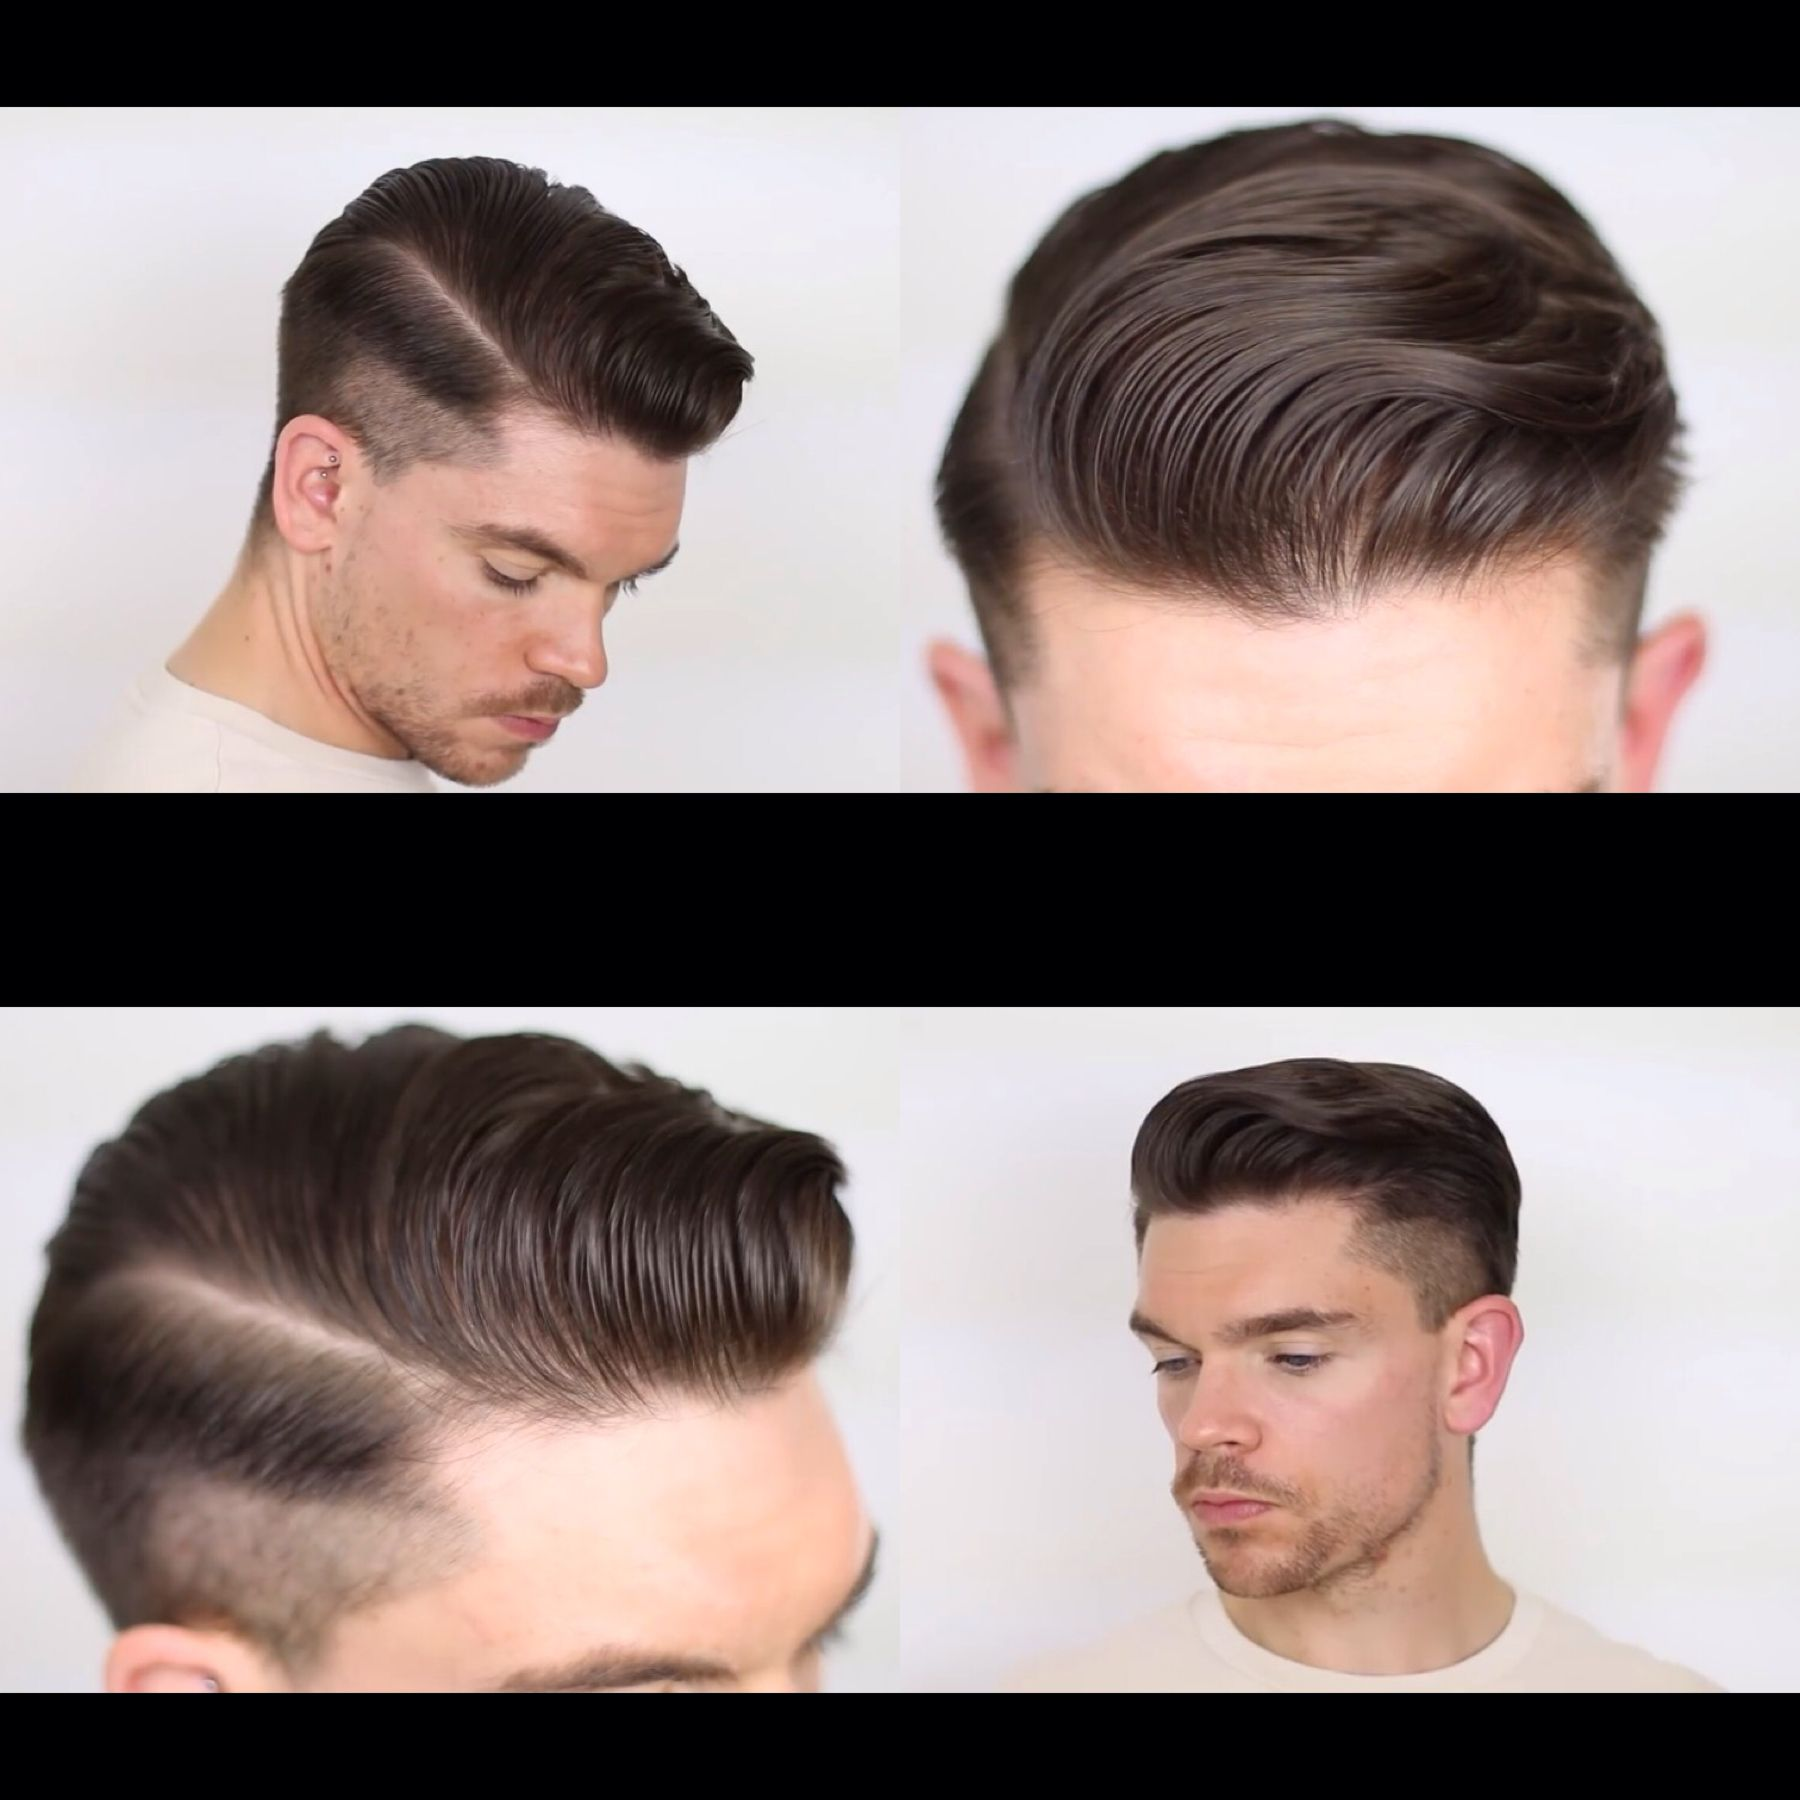 Pin by Casey Orellana on Guy hairstyles Pinterest